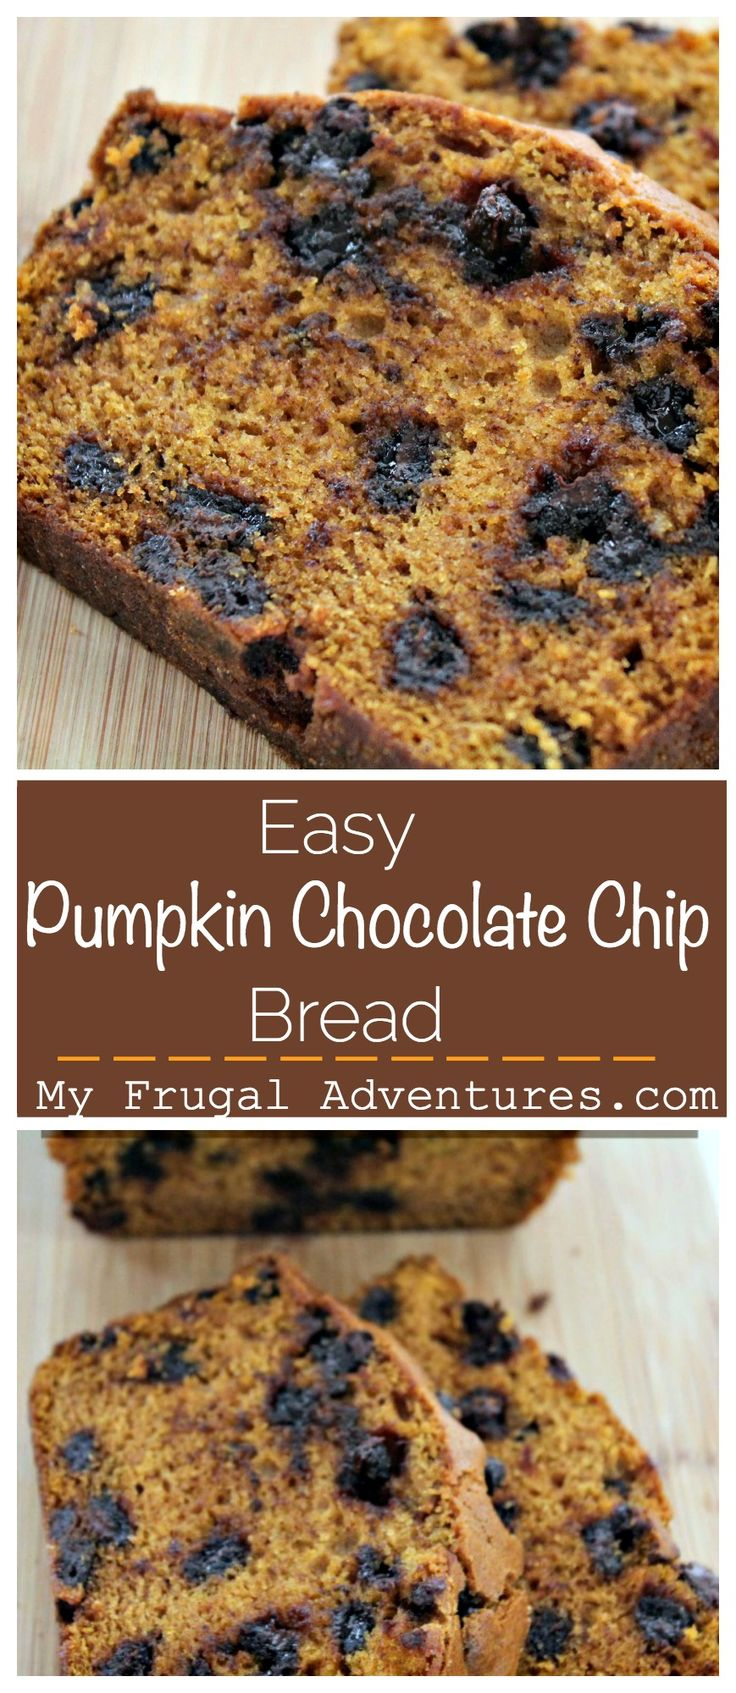 Delicious Pumpkin Chocolate Chip Bread